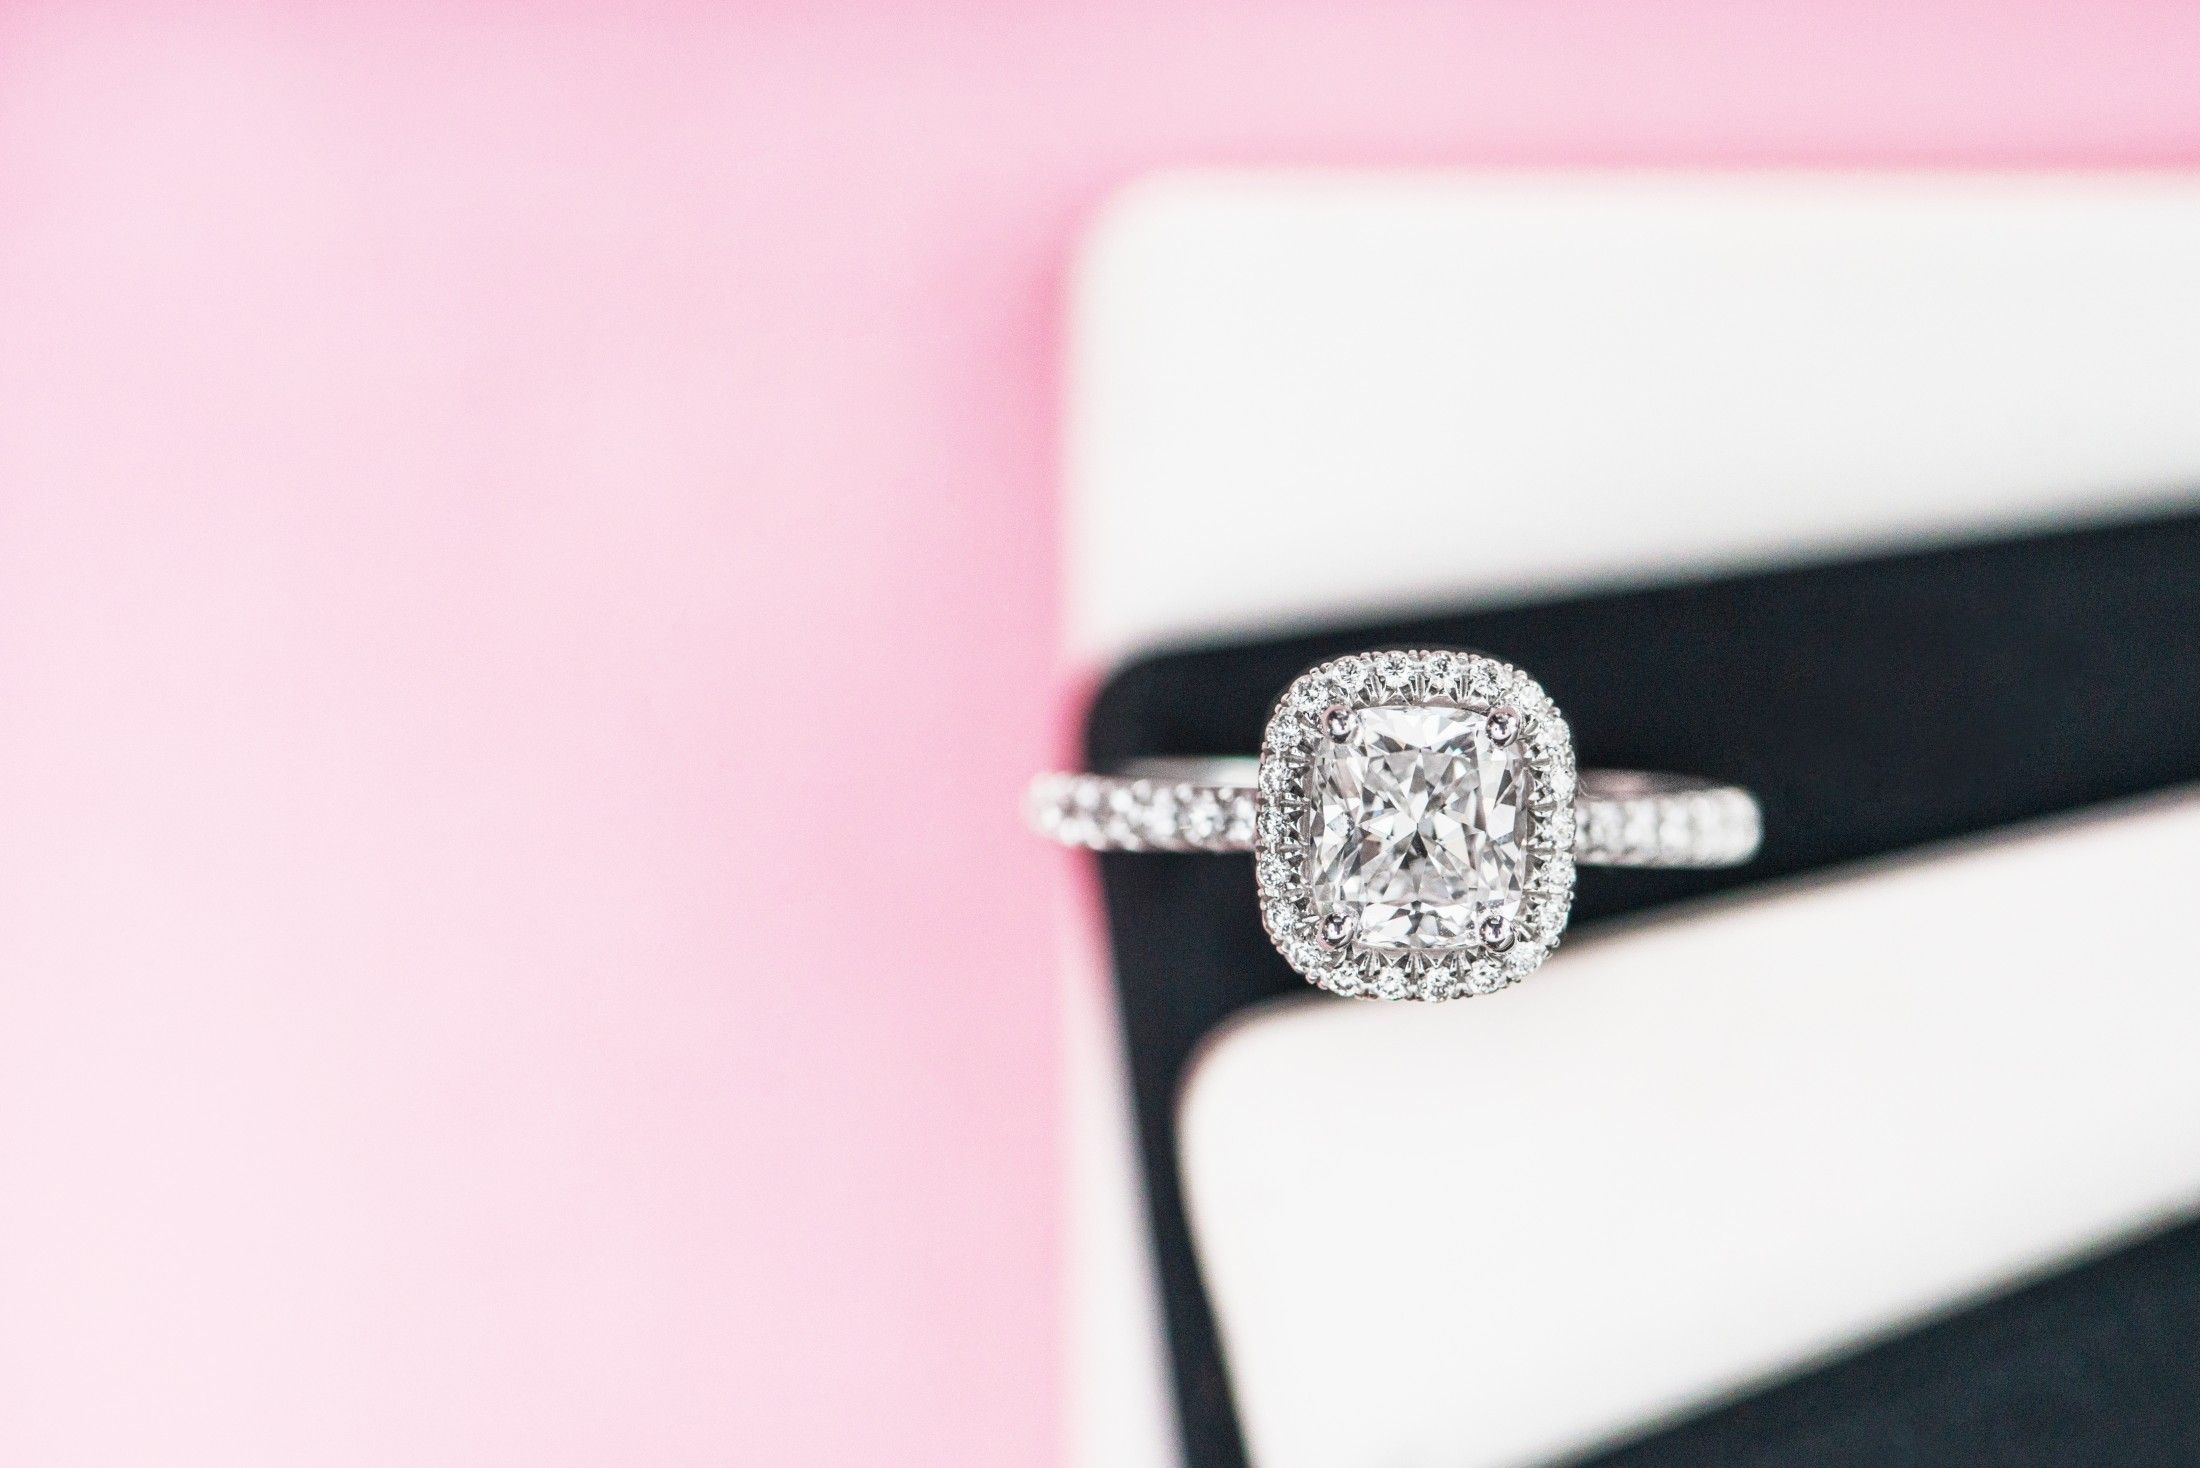 ad] Click to add extra diamonds when you design your own engagement ...